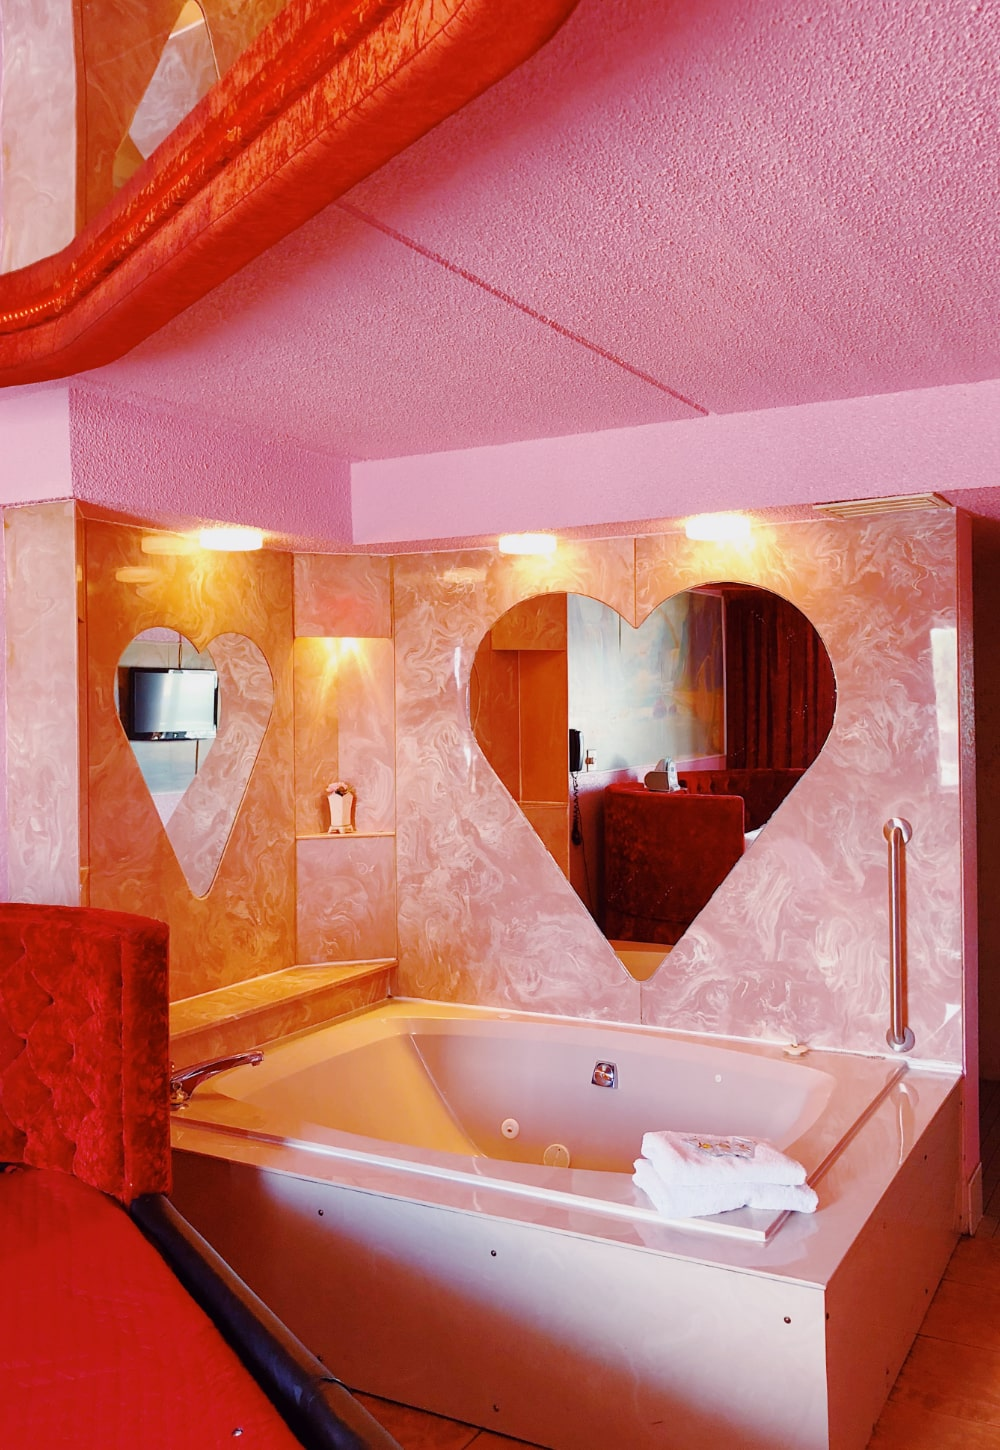 Top 10 weirdest hotels with A Pretty Cool Hotel Tour